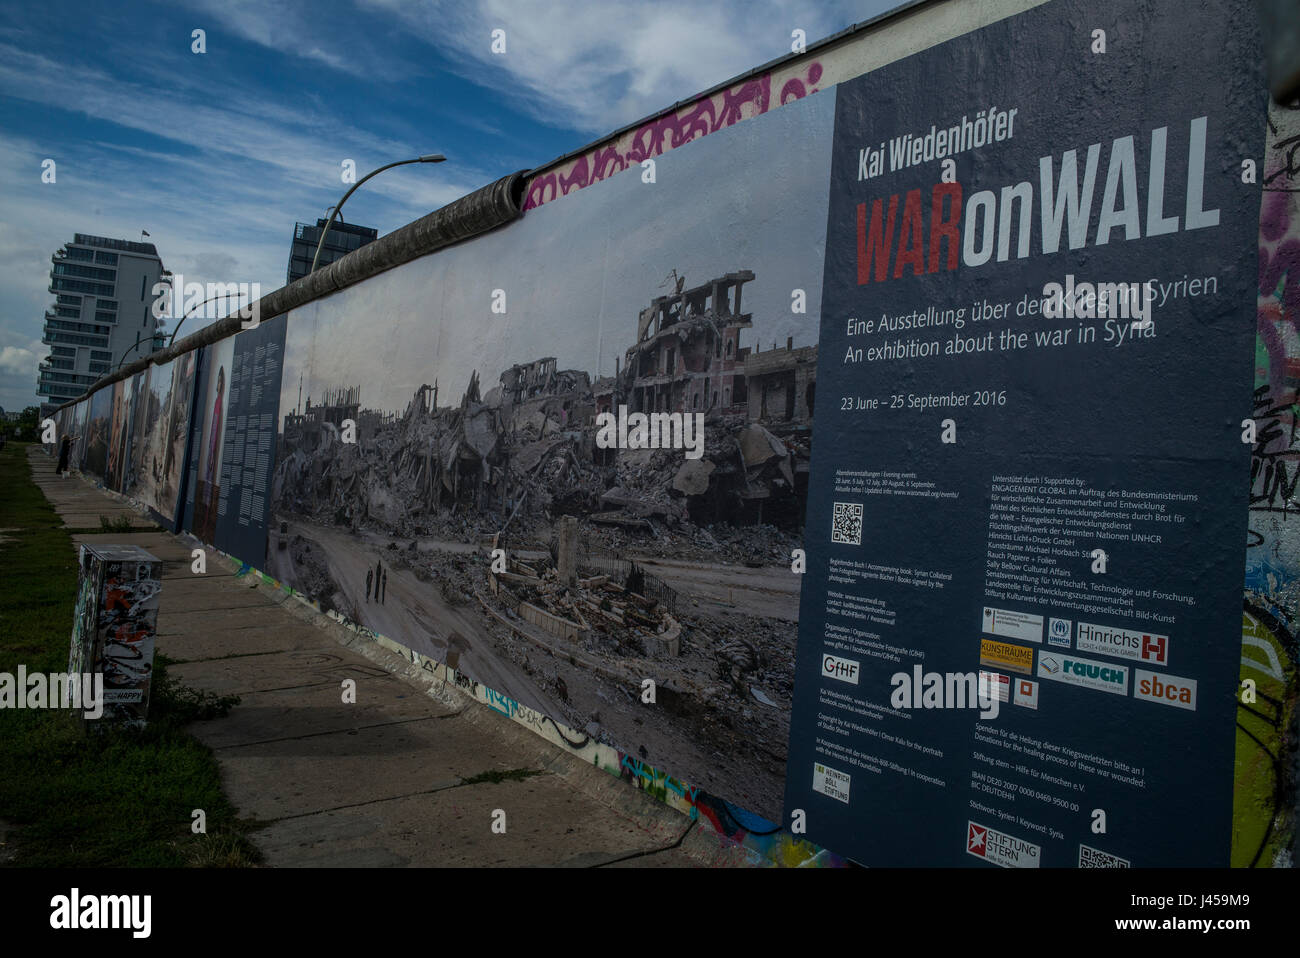 The 'War on Wall' consequences of the war in Syria exhibition by the German photographer Kai Weidenhofer - Stock Image